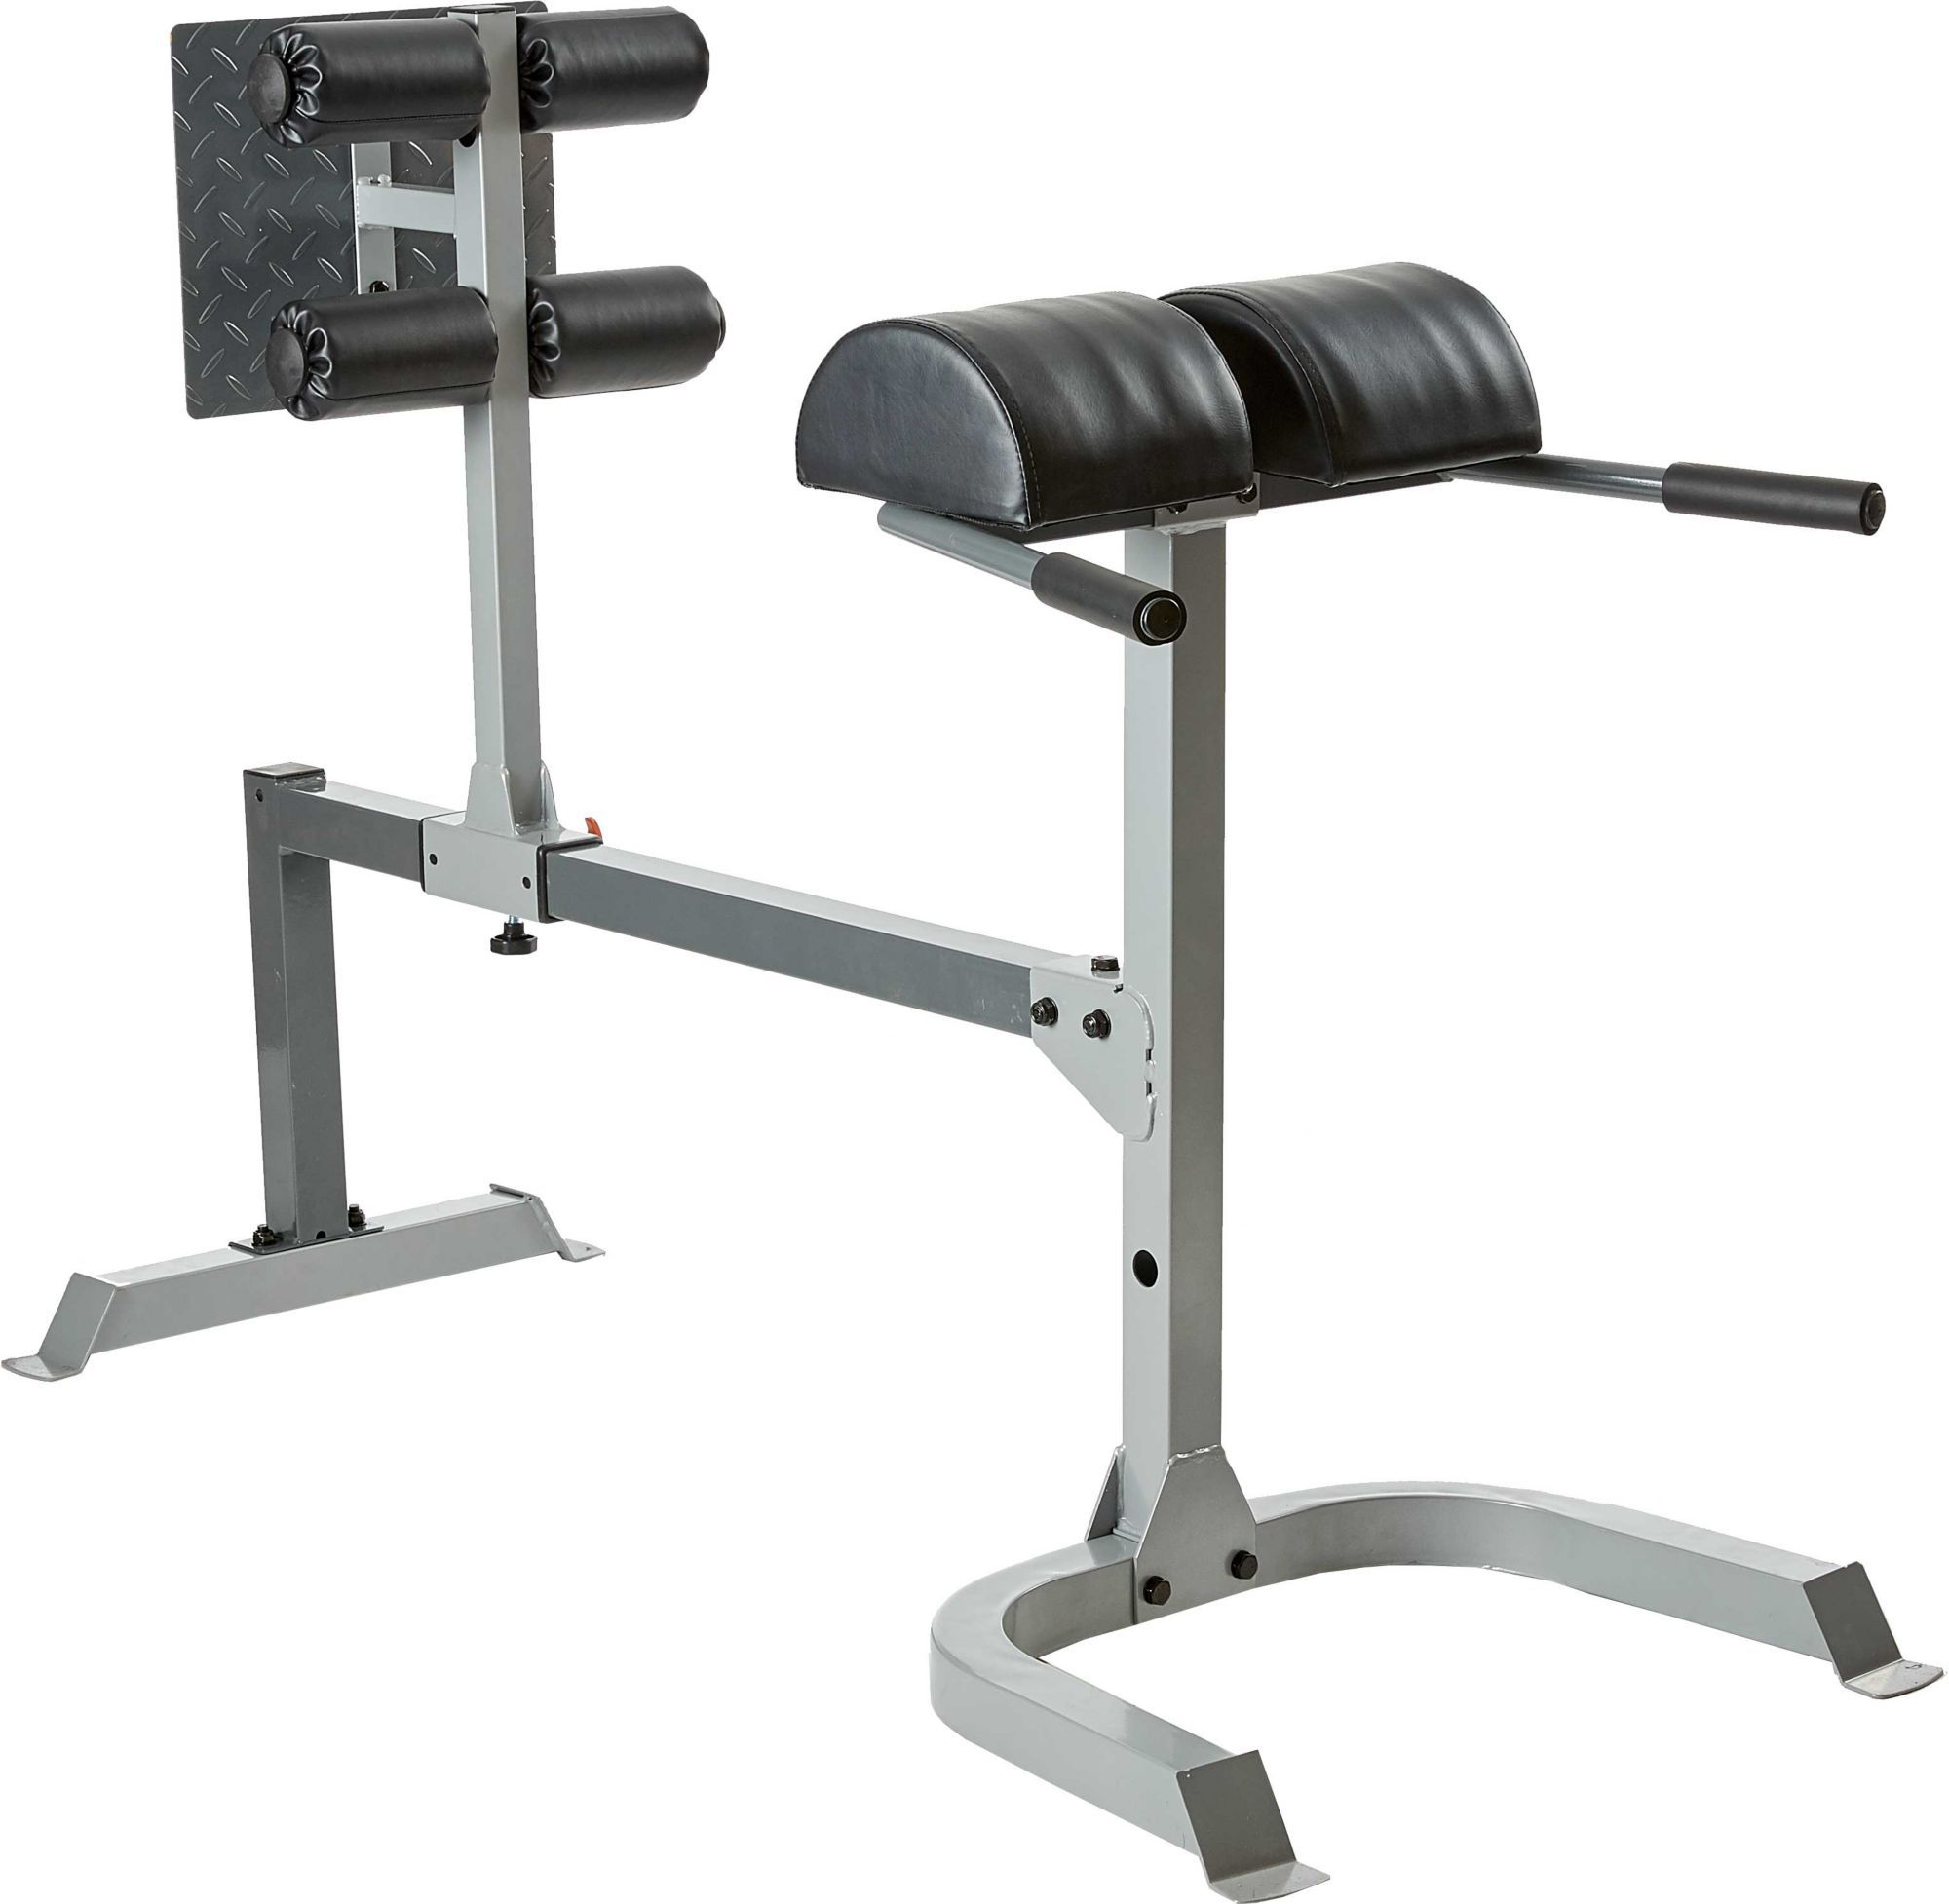 Fitness gear 2017 pro ghd weight bench silver workout